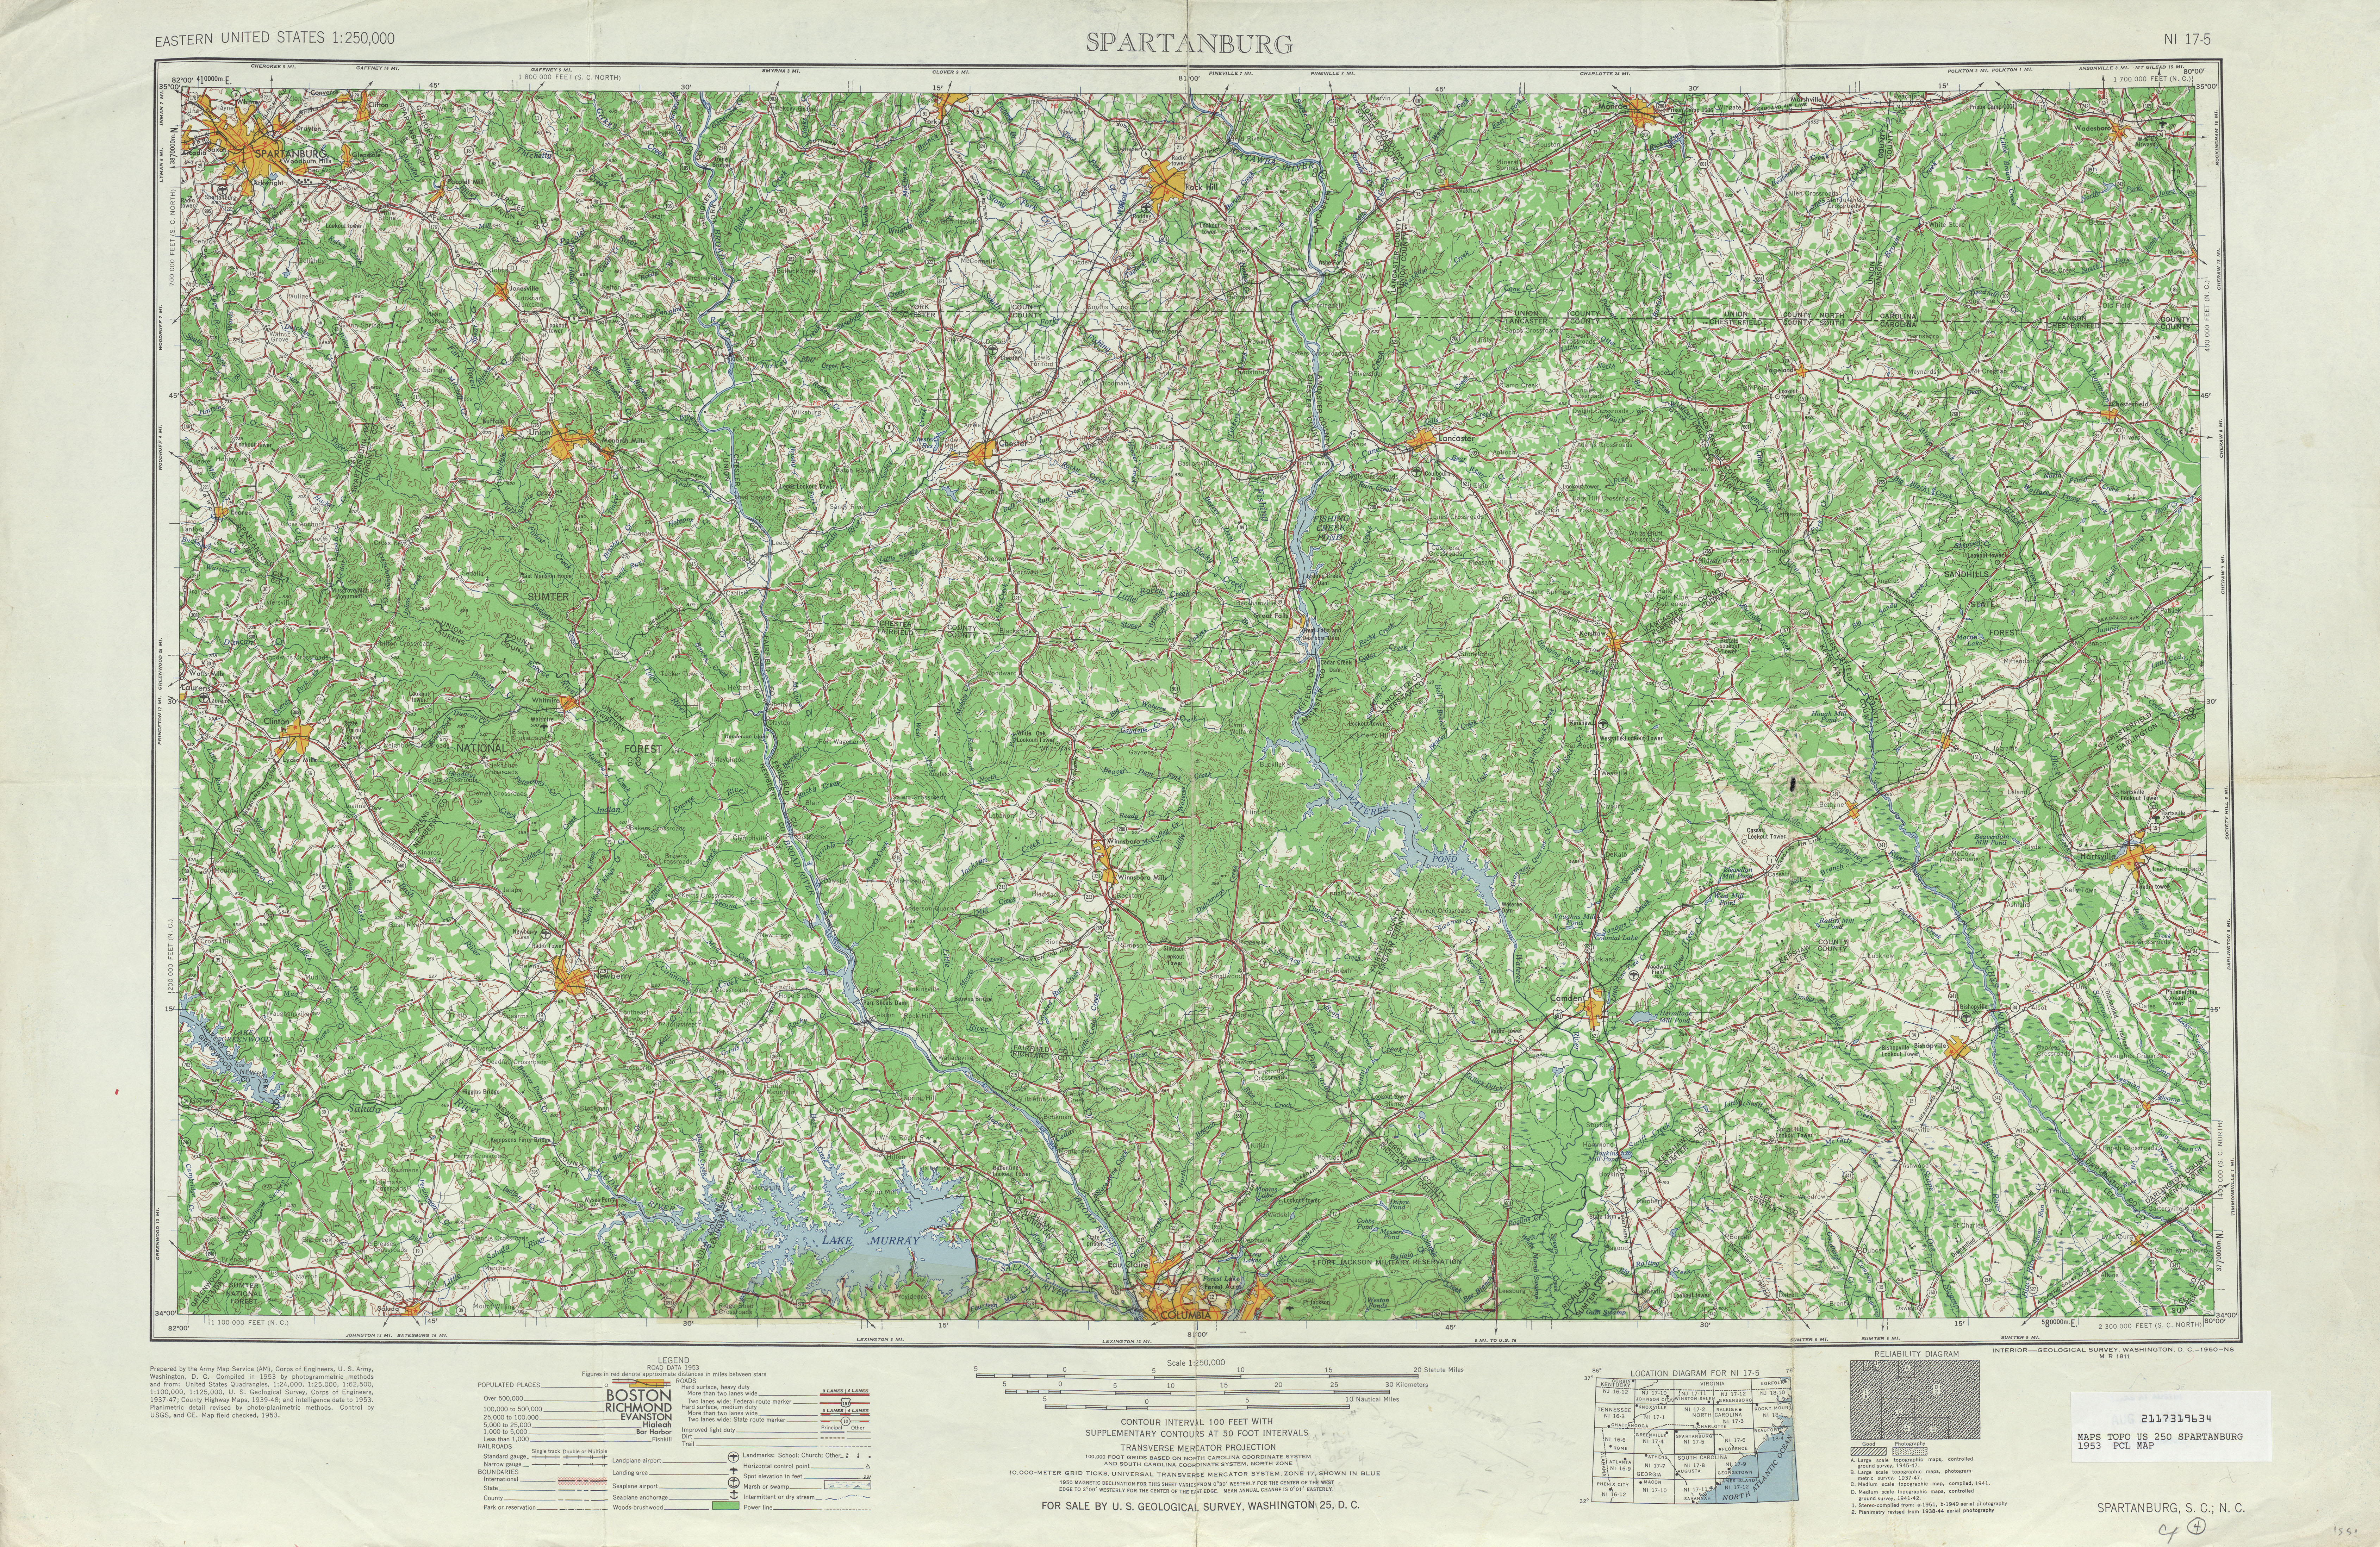 Spartanburg Topographic Map Sheet, United States 1953